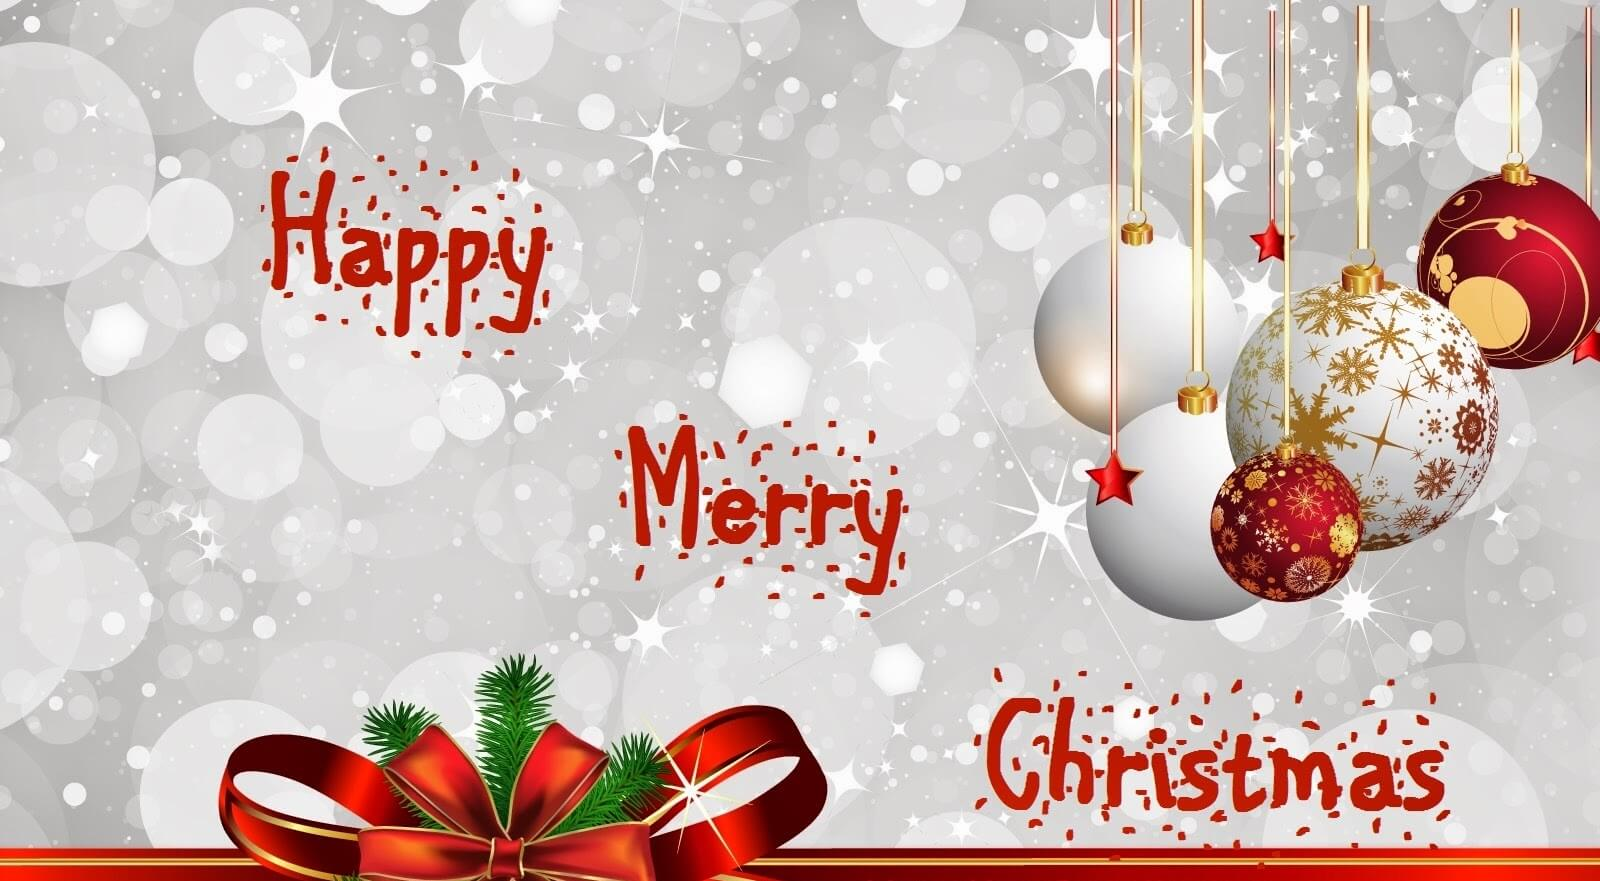 TOP Merry Christmas SMS Messages in English 2018 - FungiStaaan